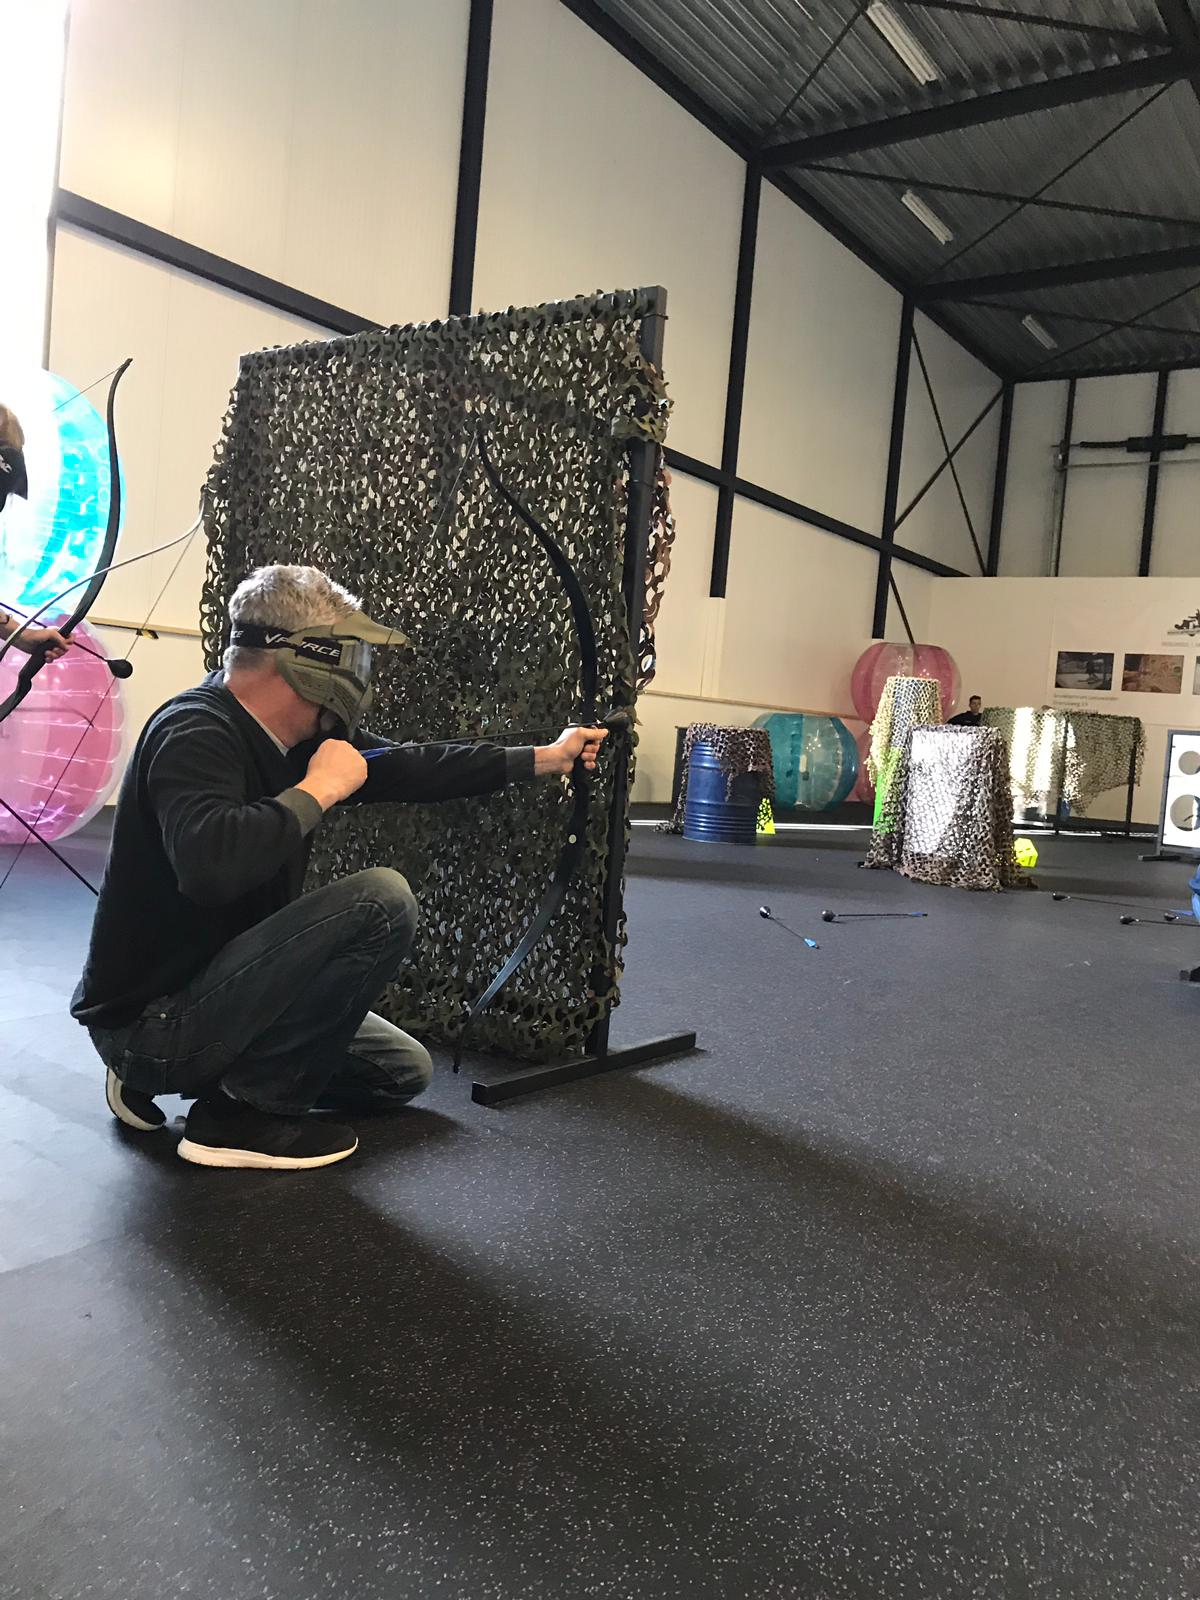 archery tag indoor fun snowcentrum joure friesland